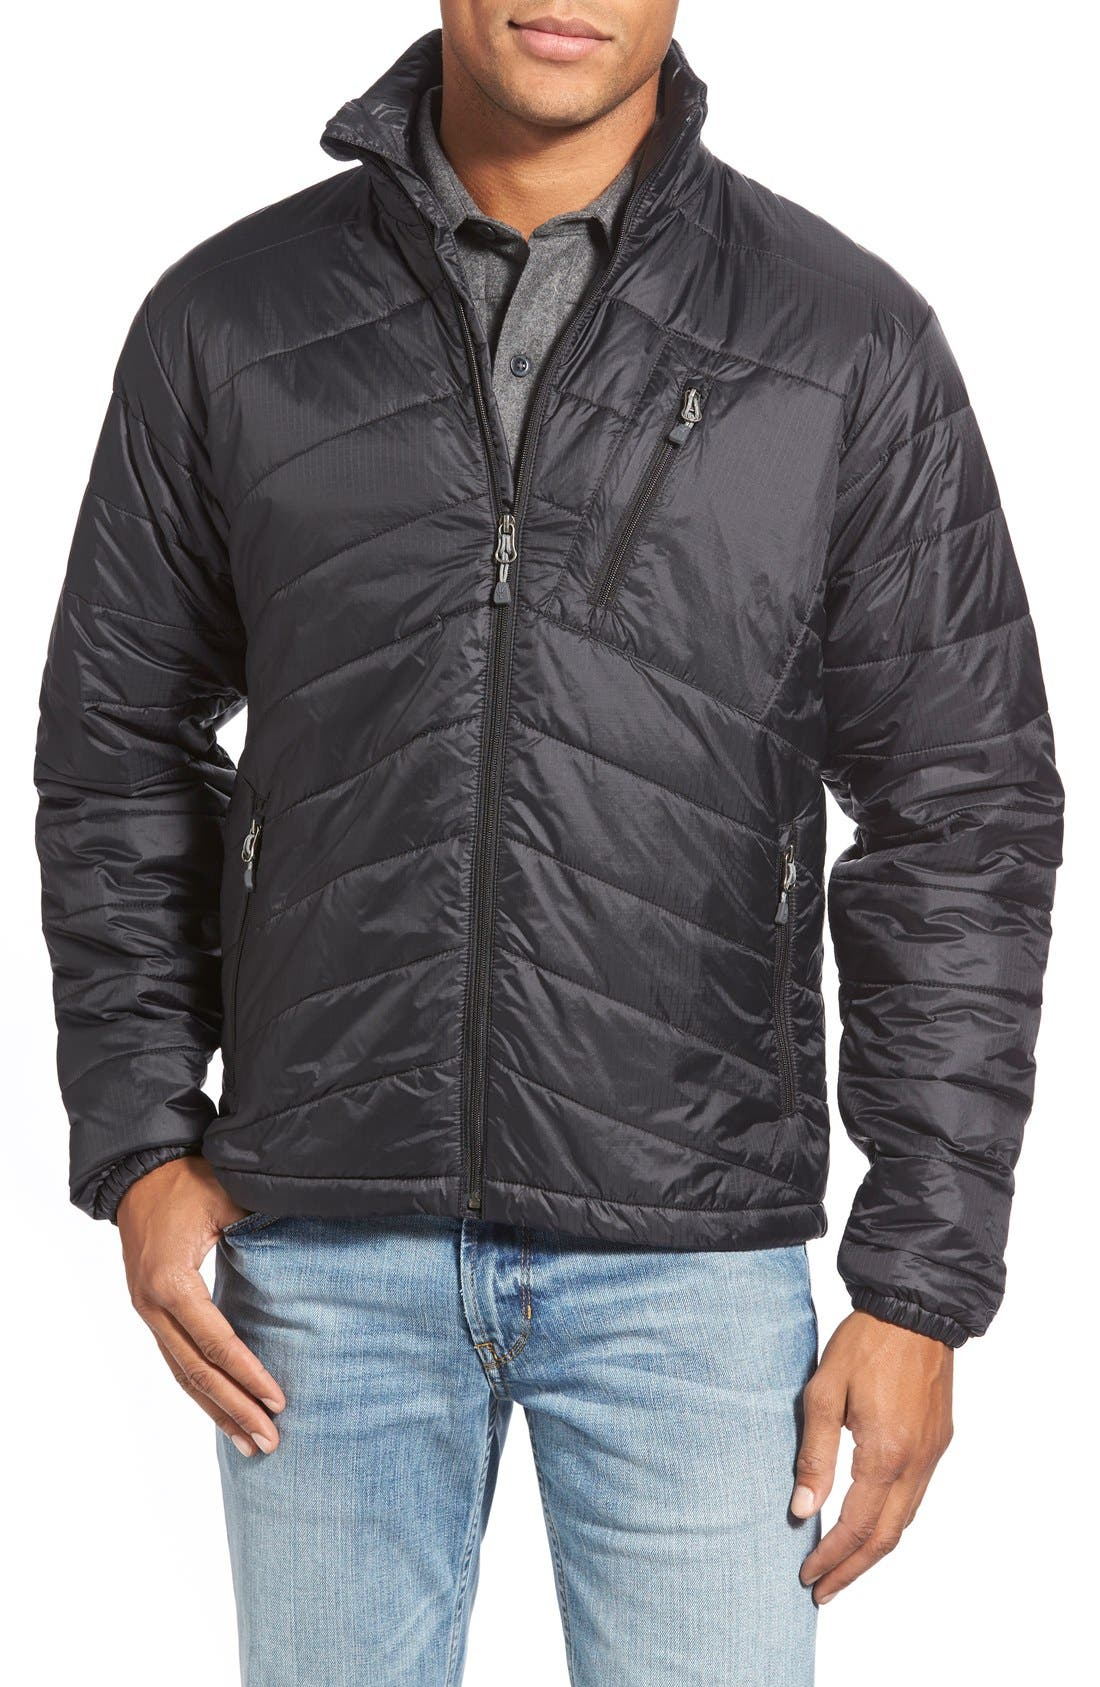 'Wool Aire' Water Resistant Jacket,                             Main thumbnail 1, color,                             001